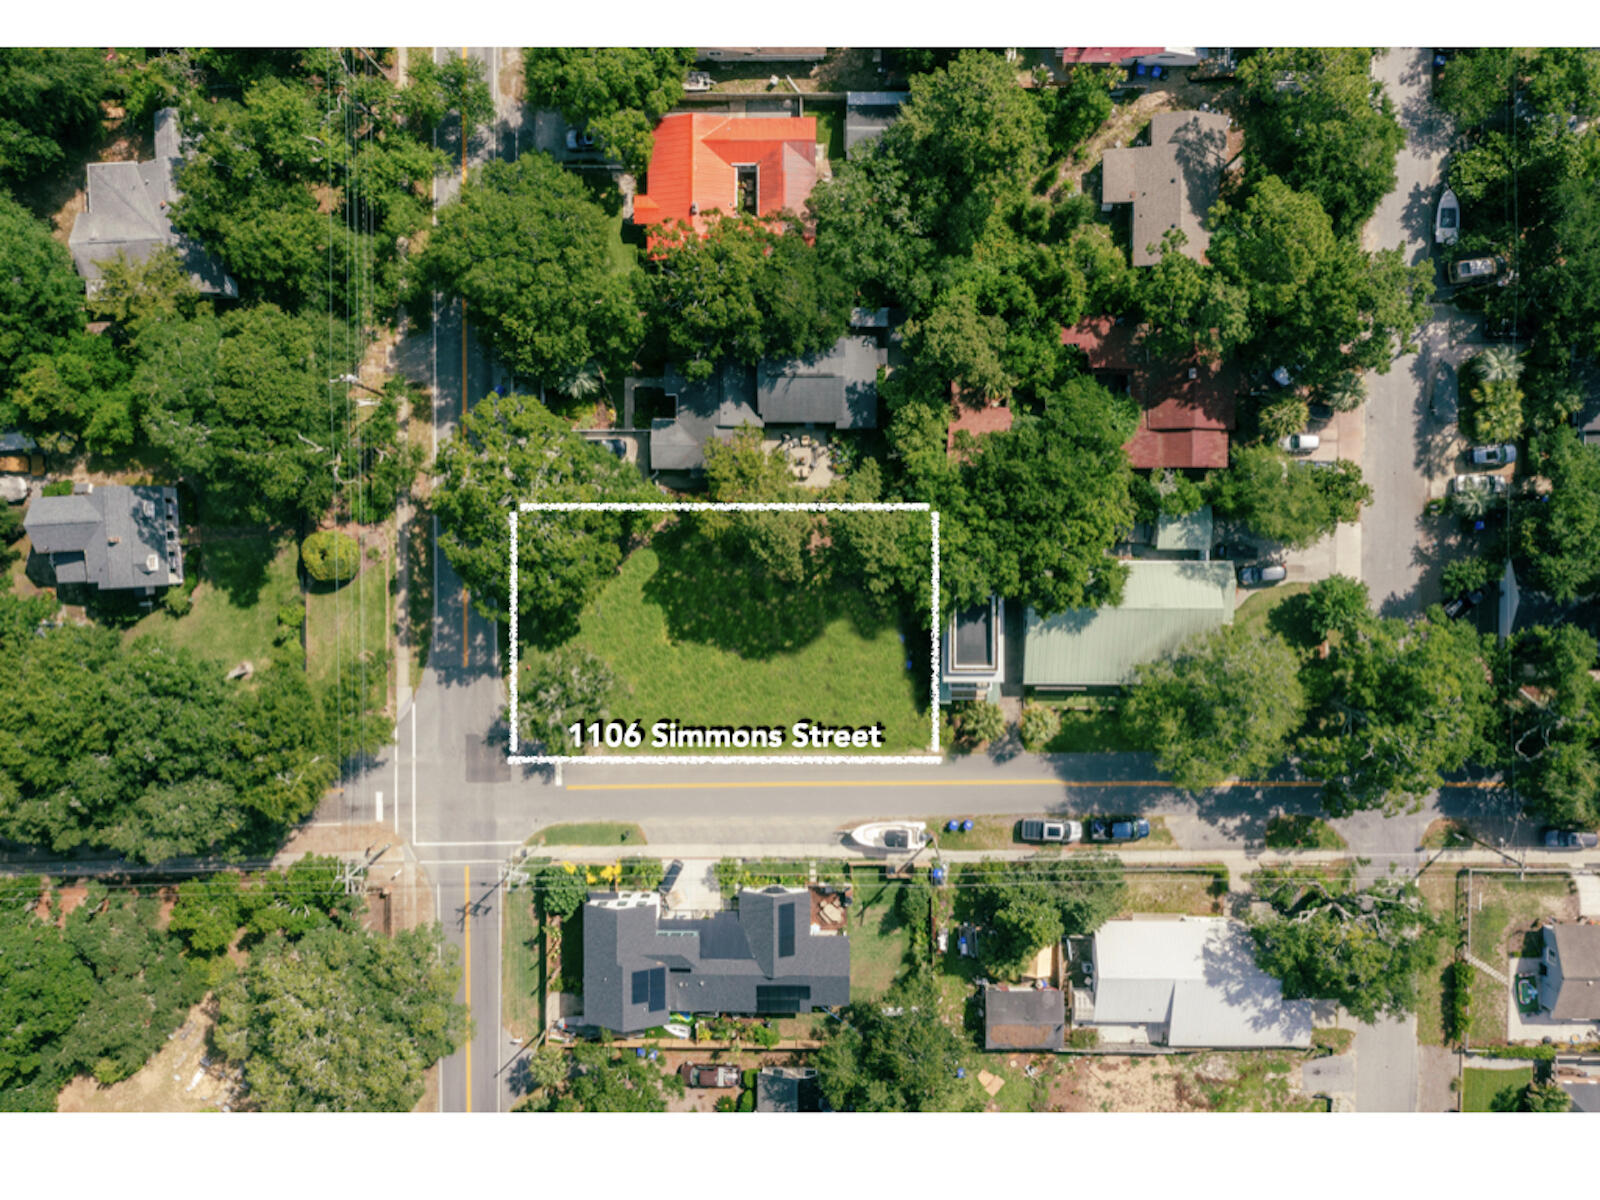 Old Mt Pleasant Homes For Sale - 1106 Simmons, Mount Pleasant, SC - 7